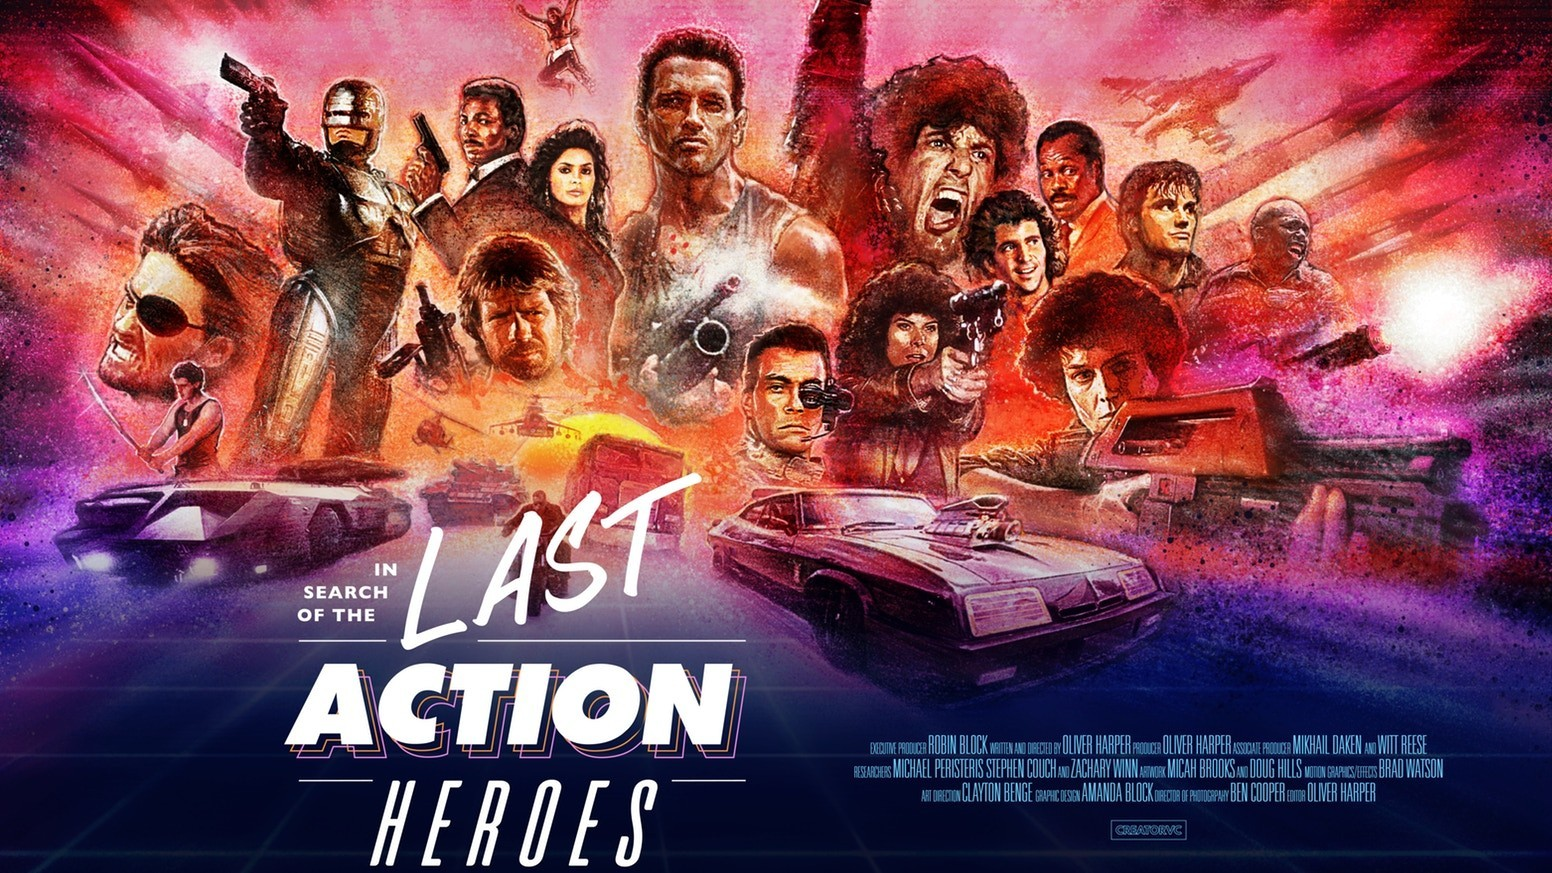 Last Action Heroes